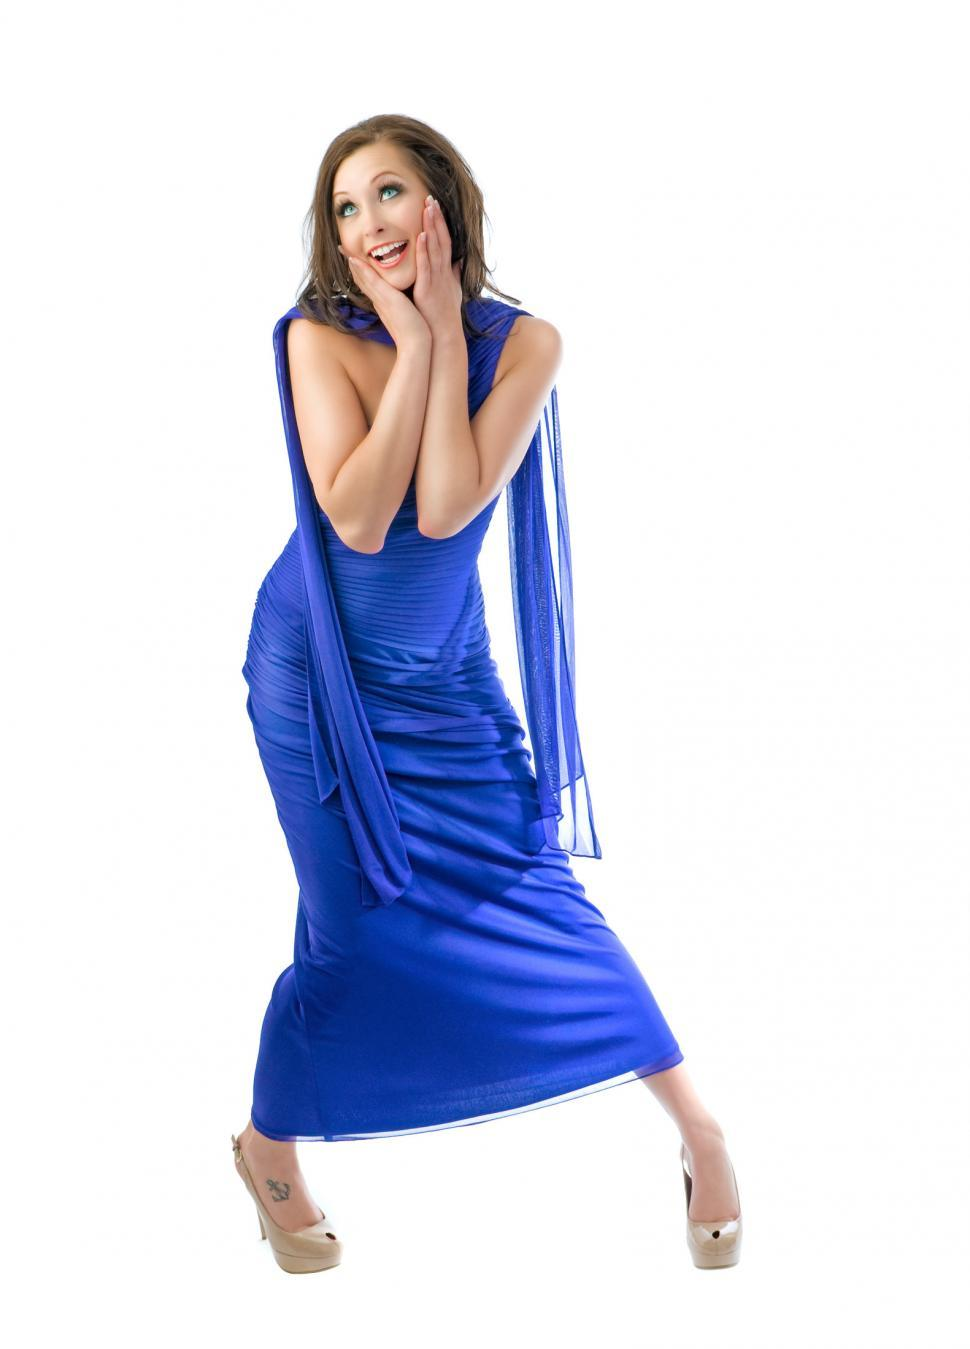 Download Free Stock Photo of Young woman in blue dress is excited